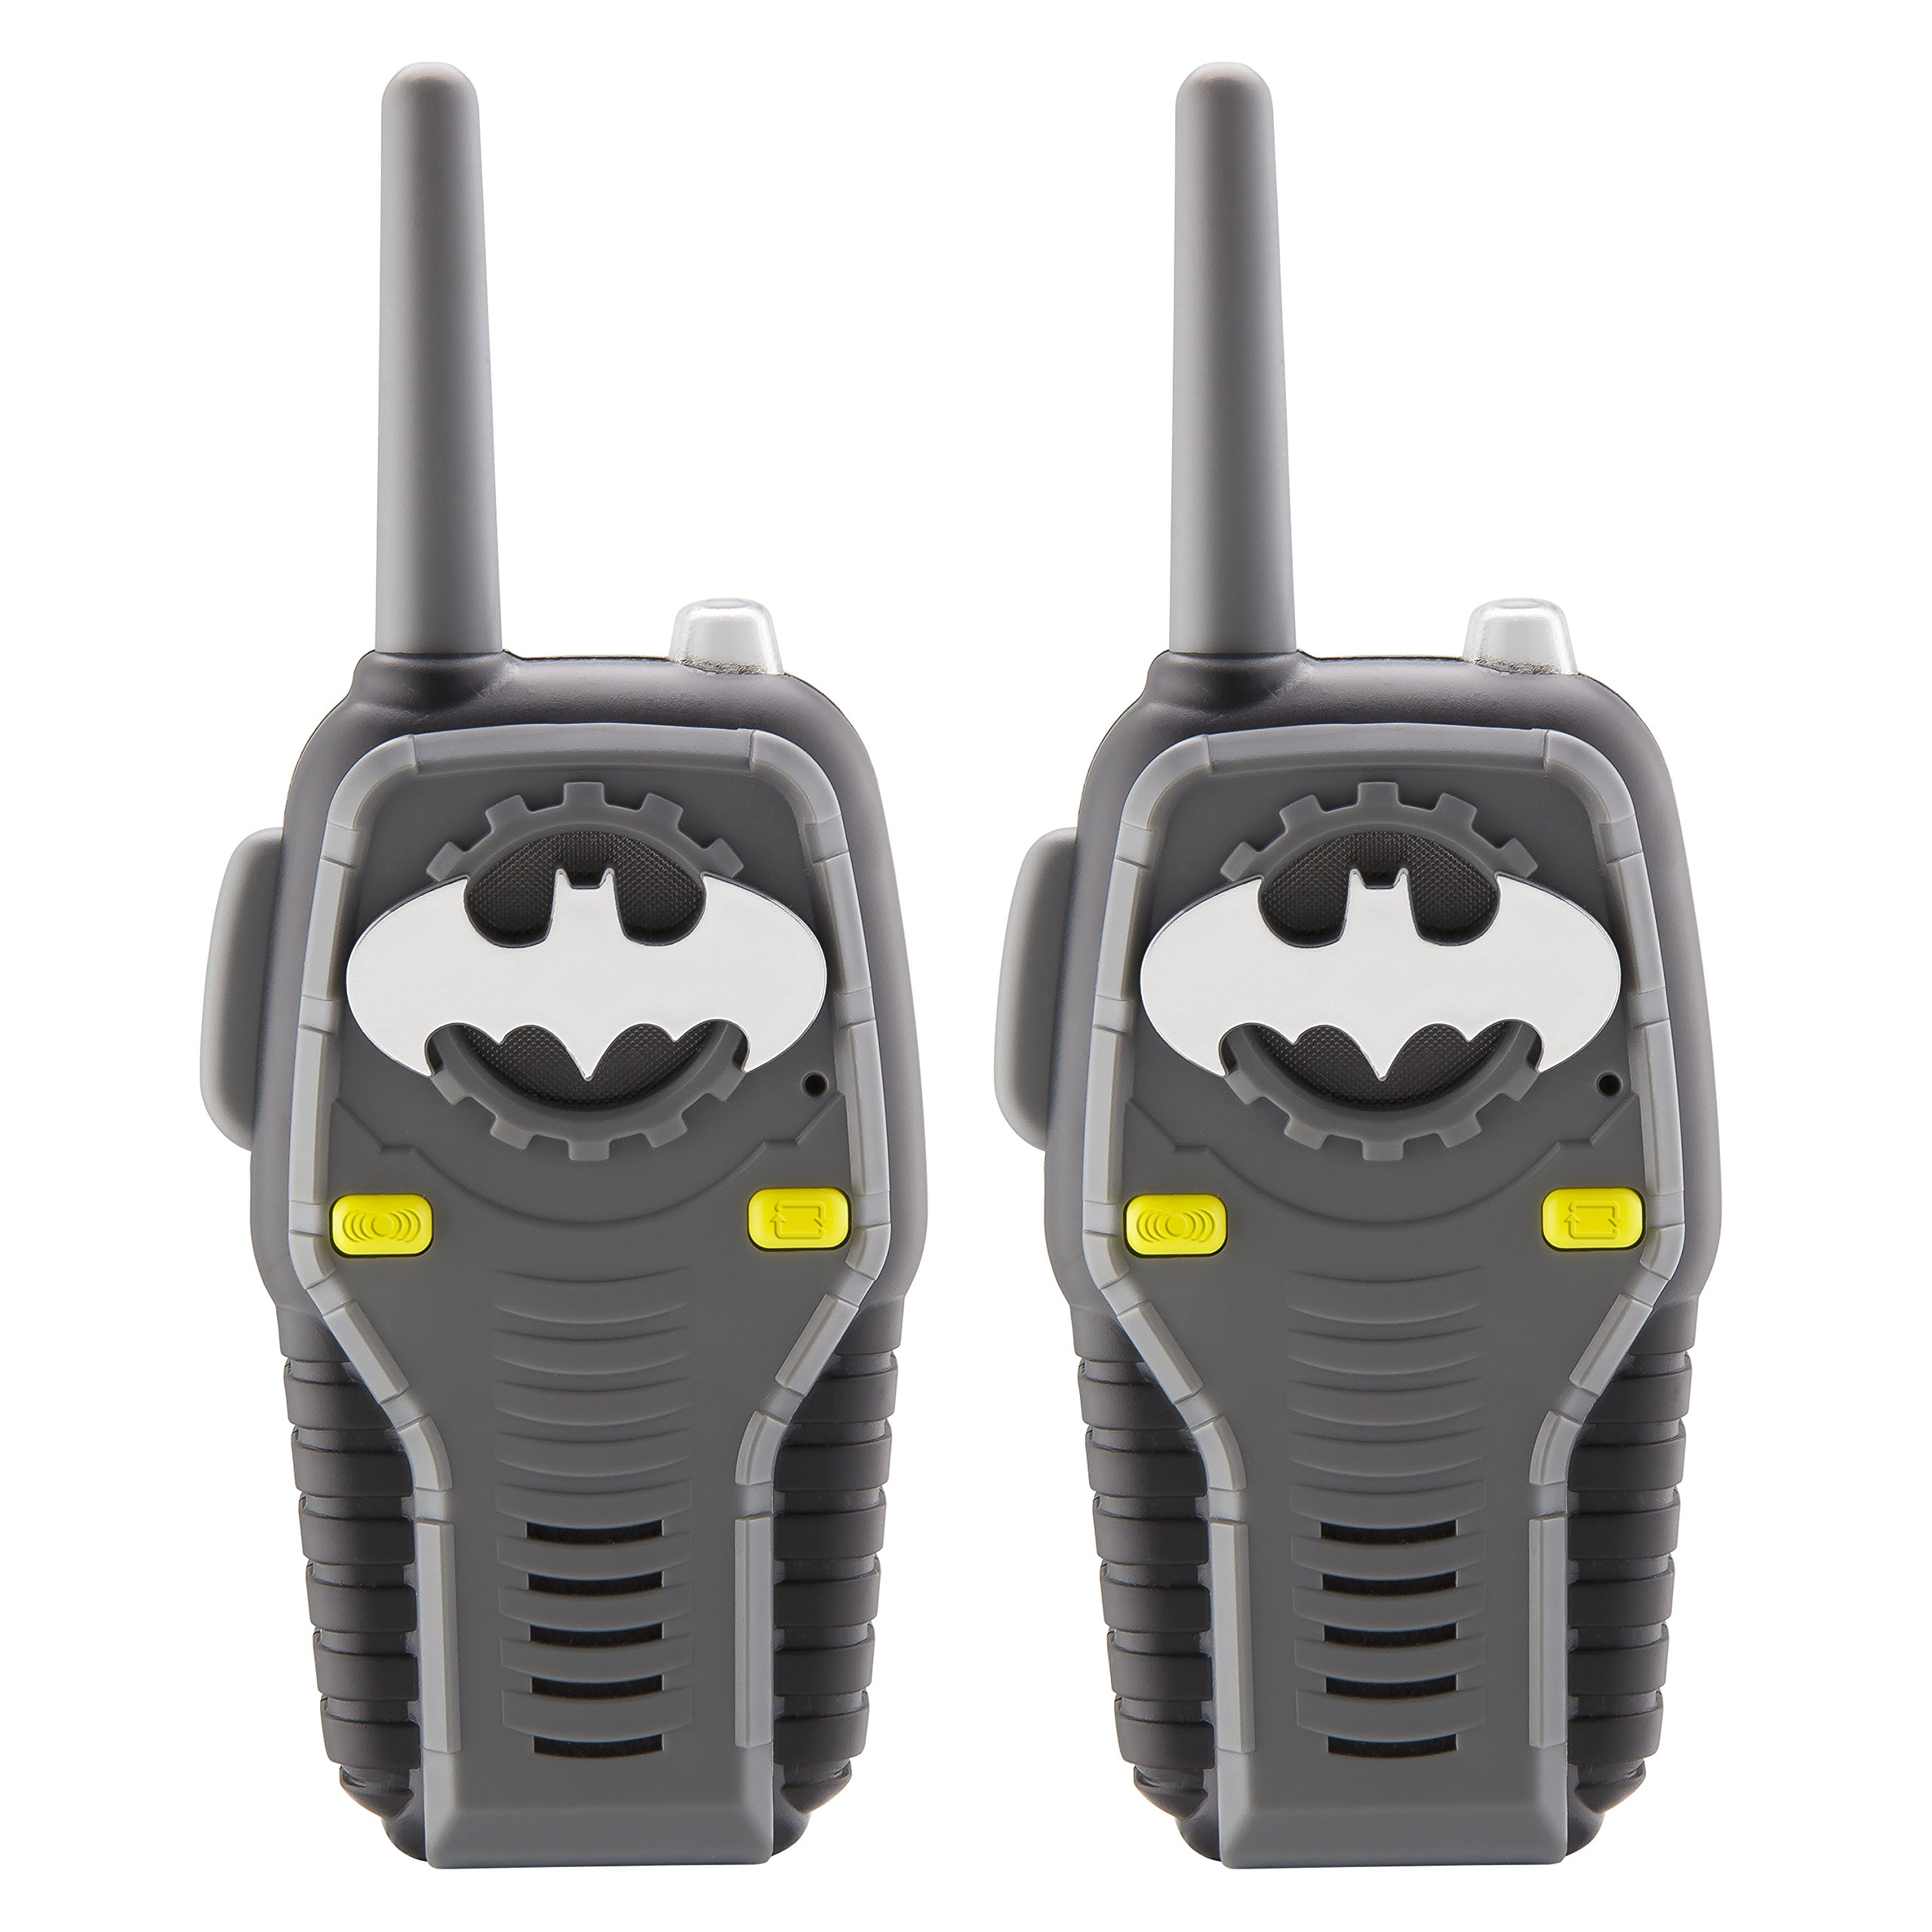 Batman FRS Walkie Talkies for Kids with Lights and Sounds Kid Friendly Easy to Use